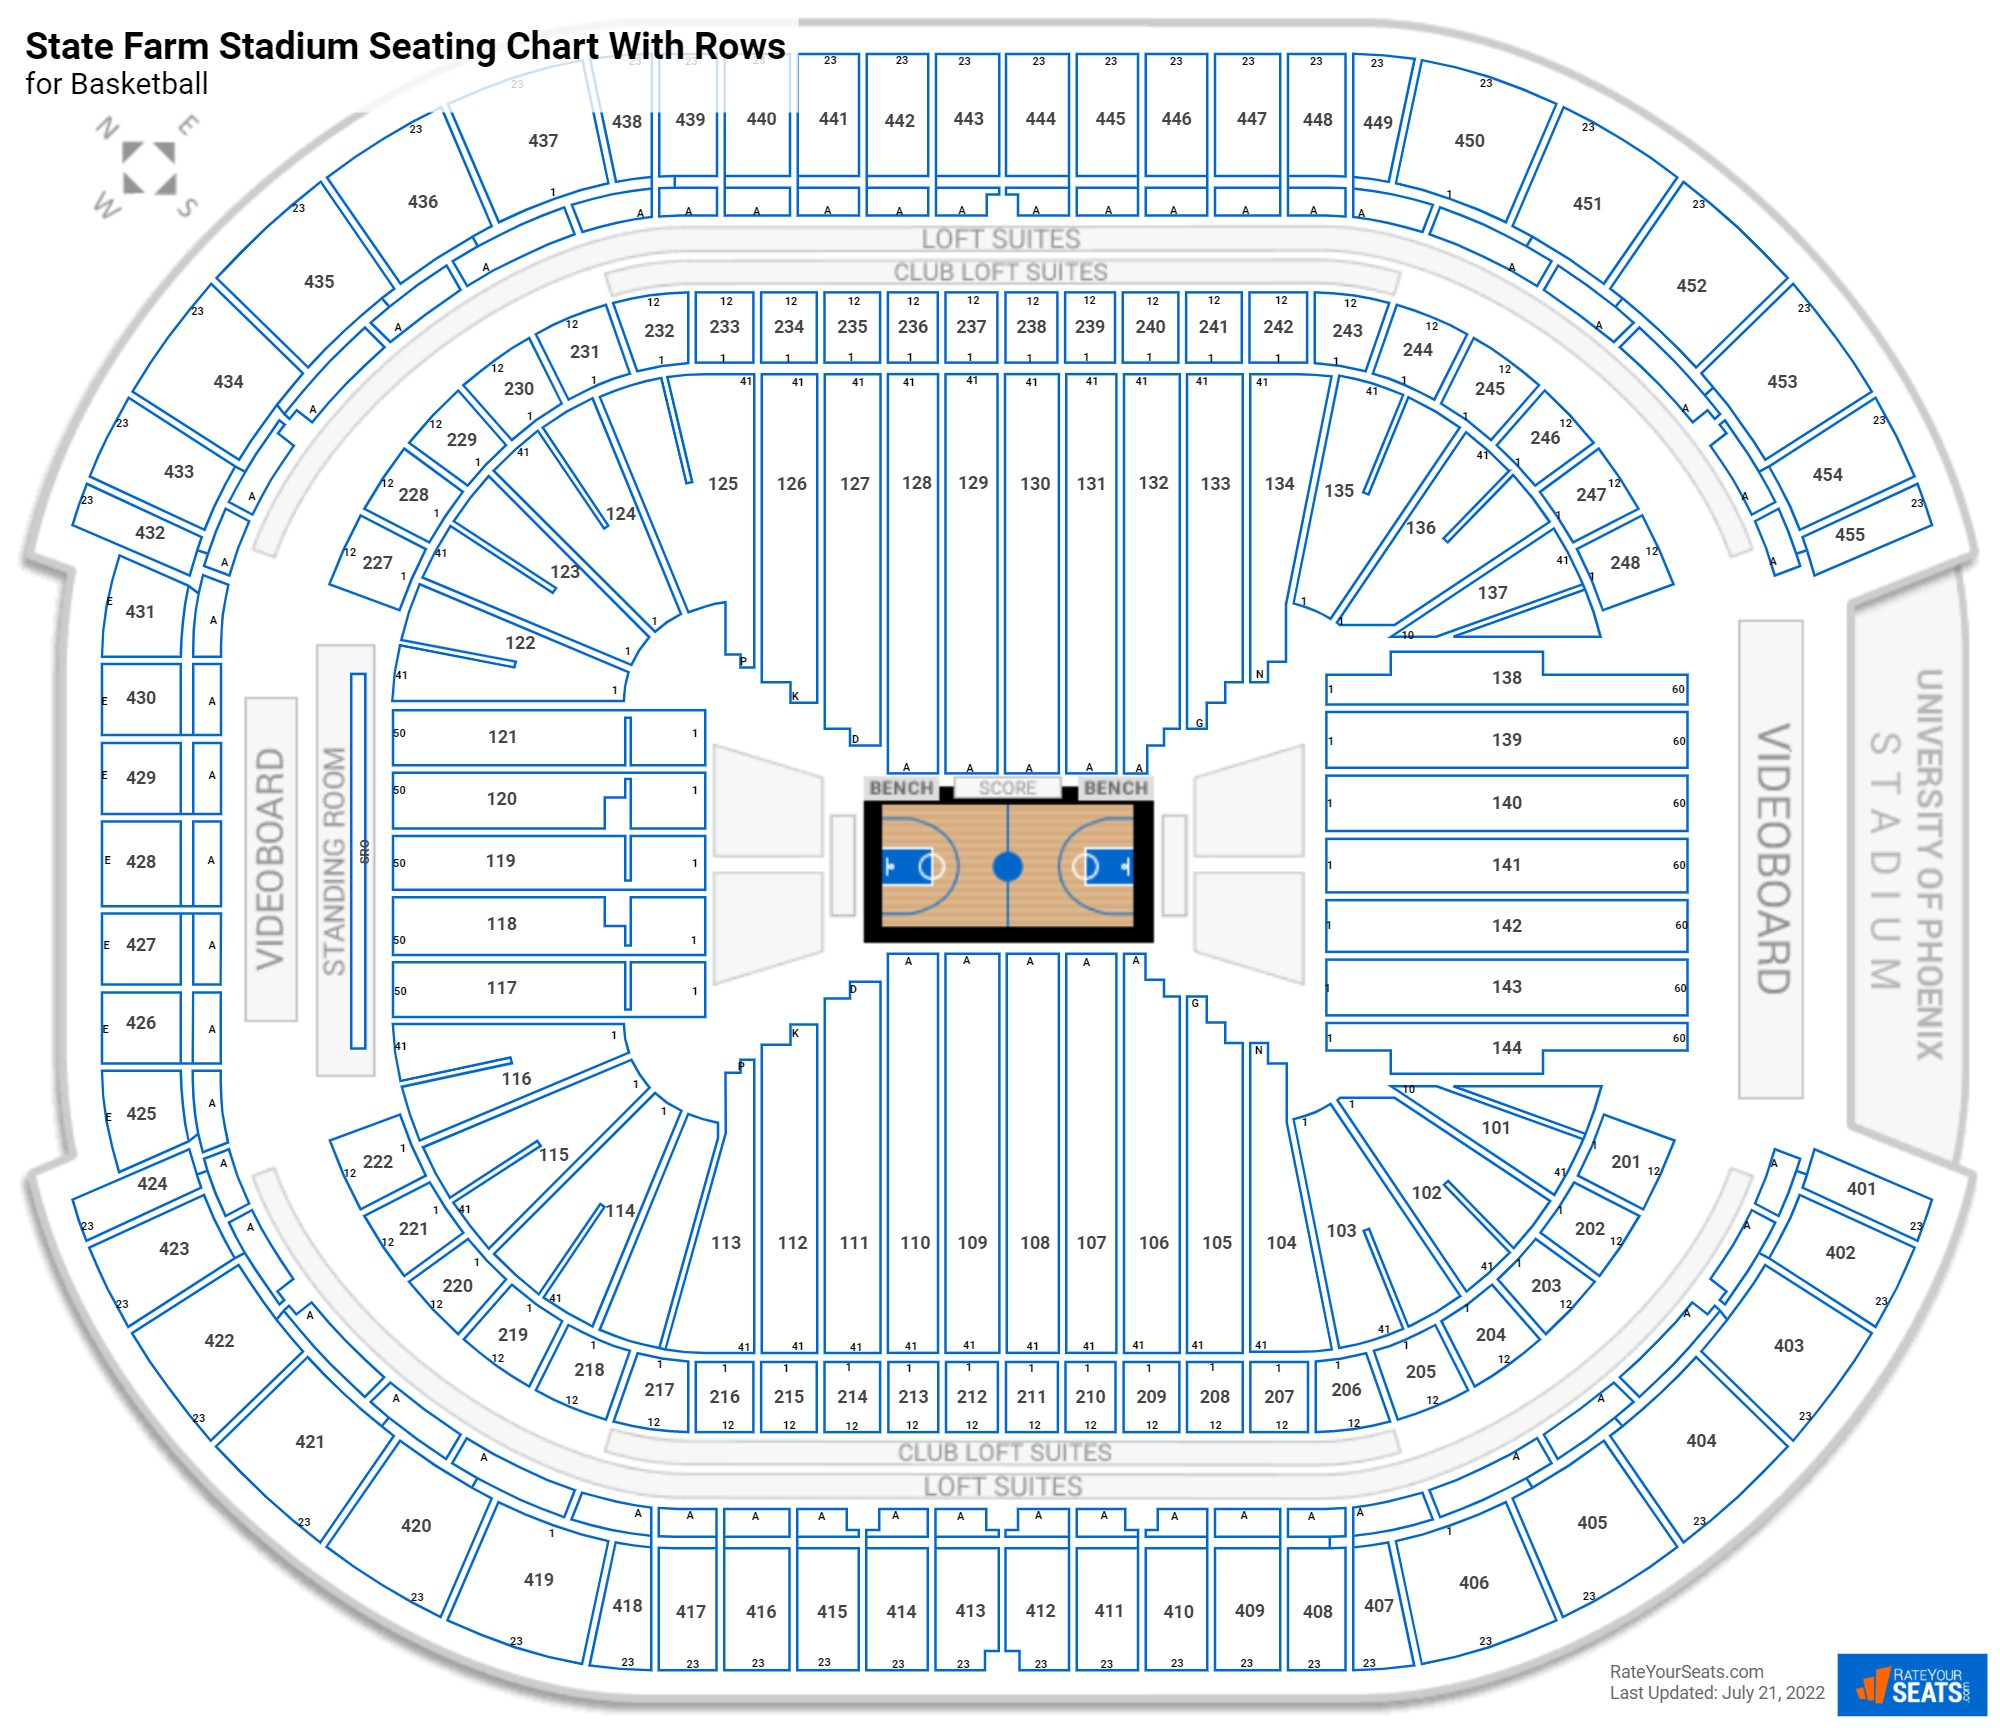 State Farm Stadium seating chart with rows basketball